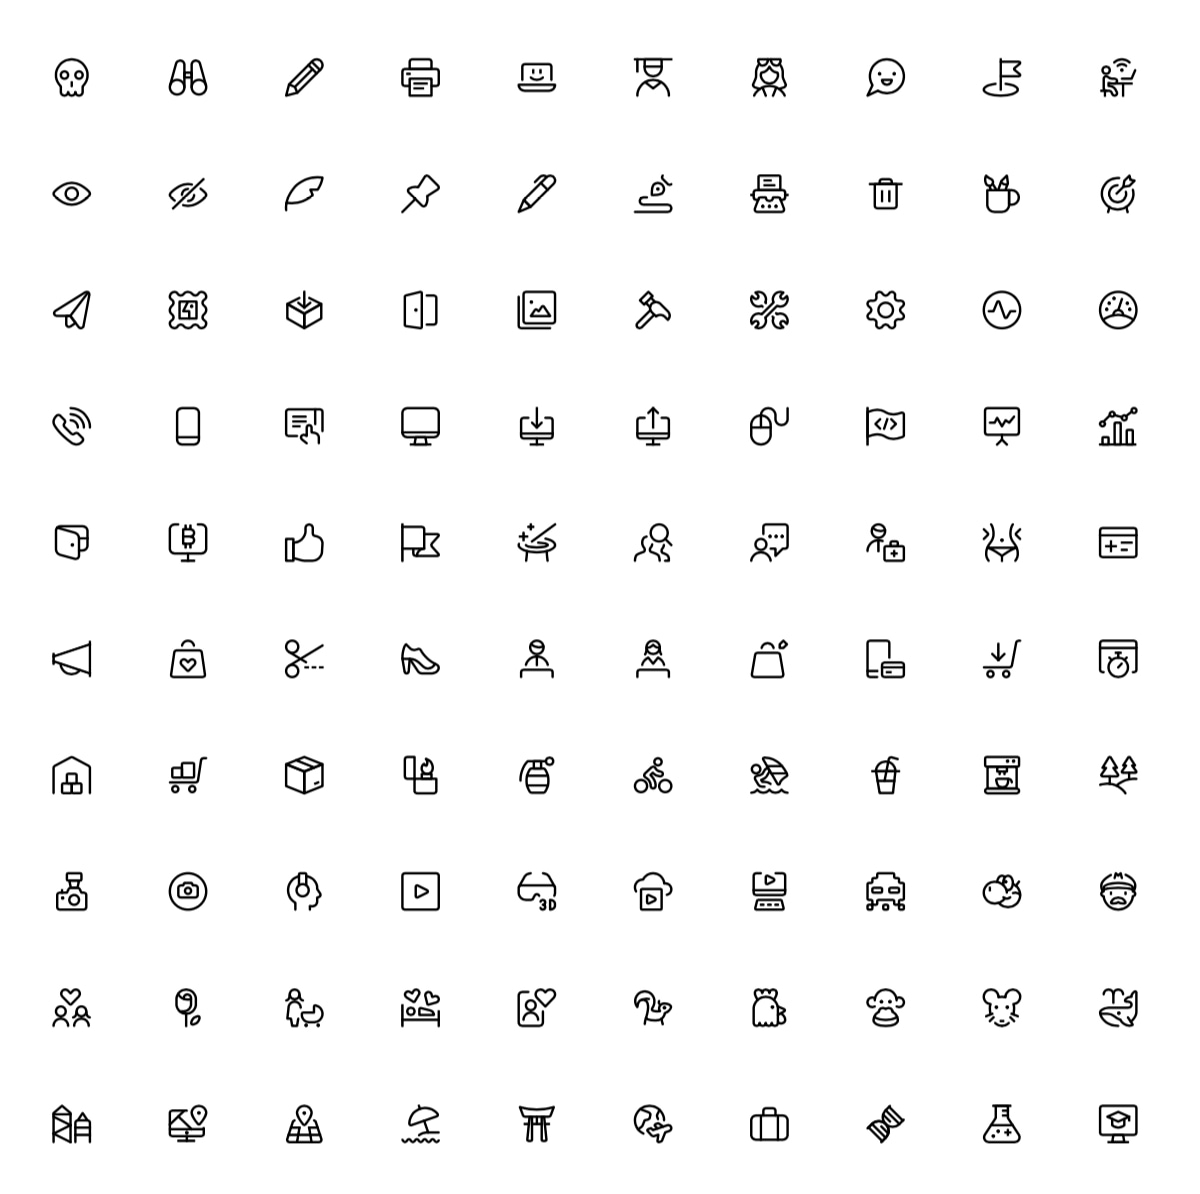 Free Streamline Icons - Streamline 3.0 is the world's largest icon library